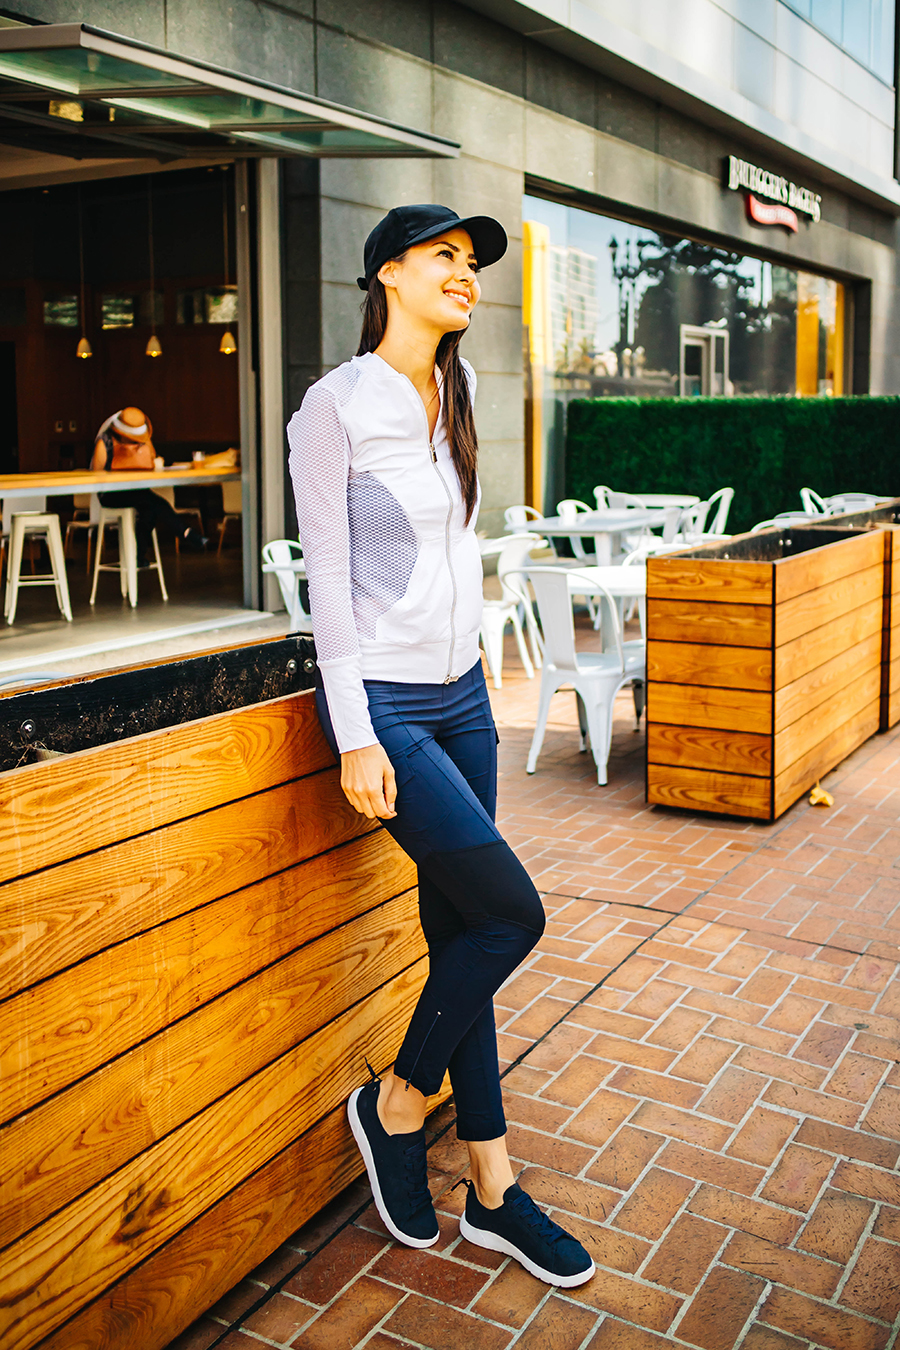 BEARPAW   HAT   // ANATOMIE STYLE   PANTS & JACKET   // BEARPAW   SNEAKERS